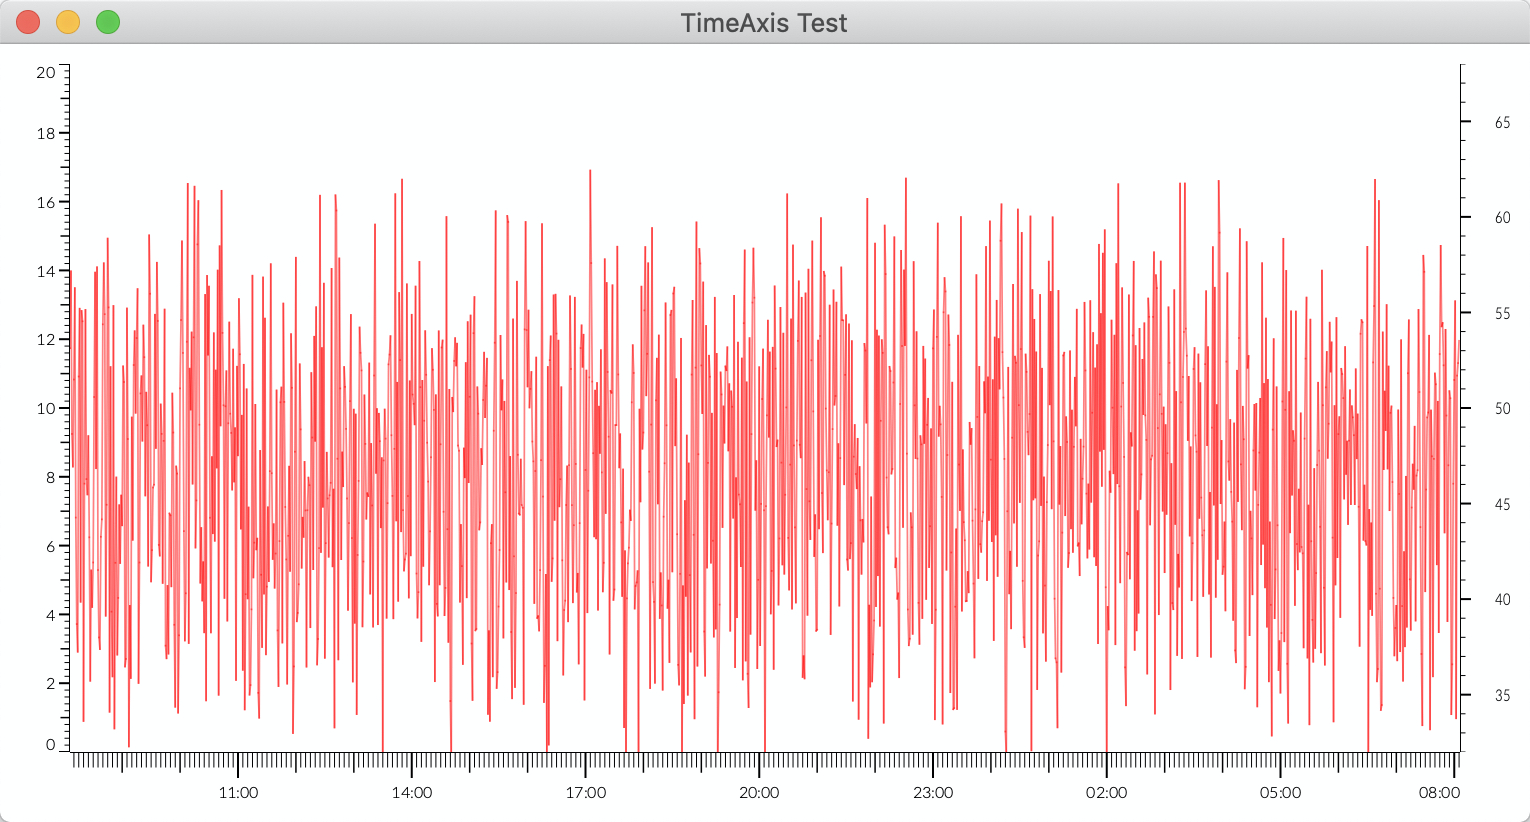 Time based x-axis